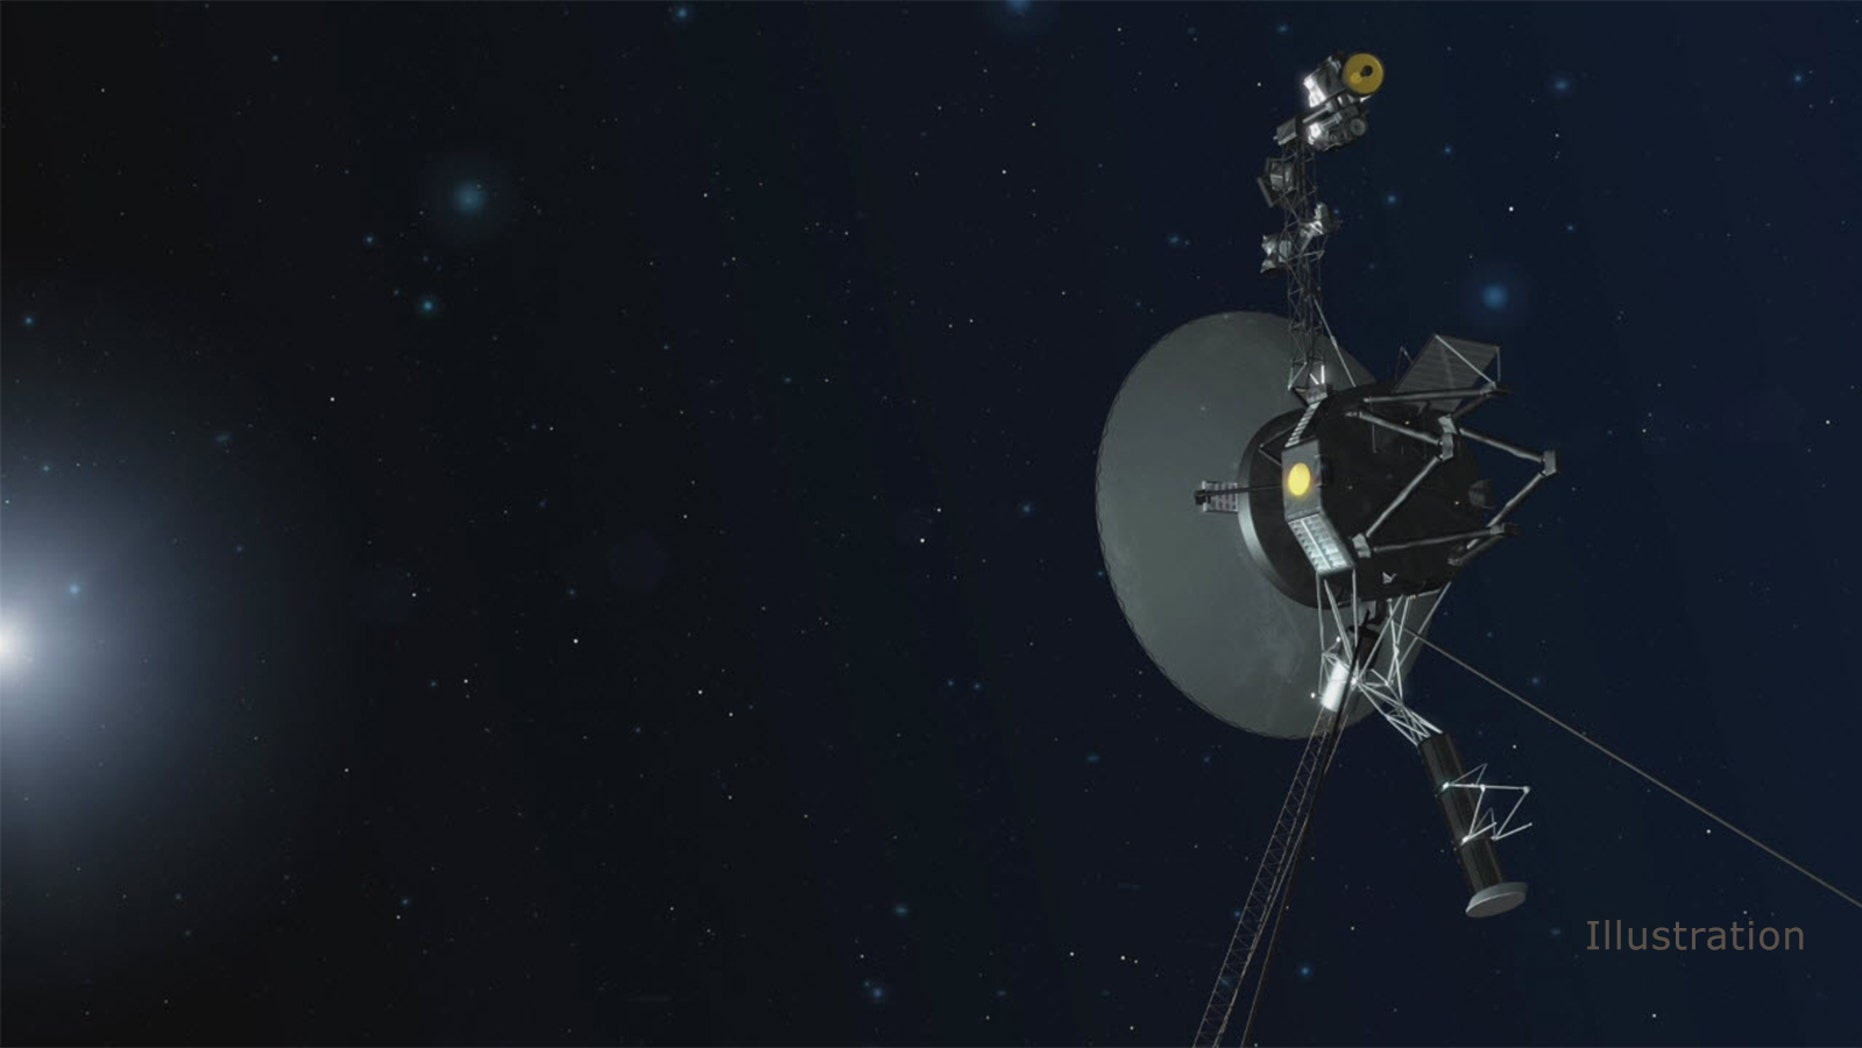 An artist's visualization of NASA's Voyager 1 spacecraft.